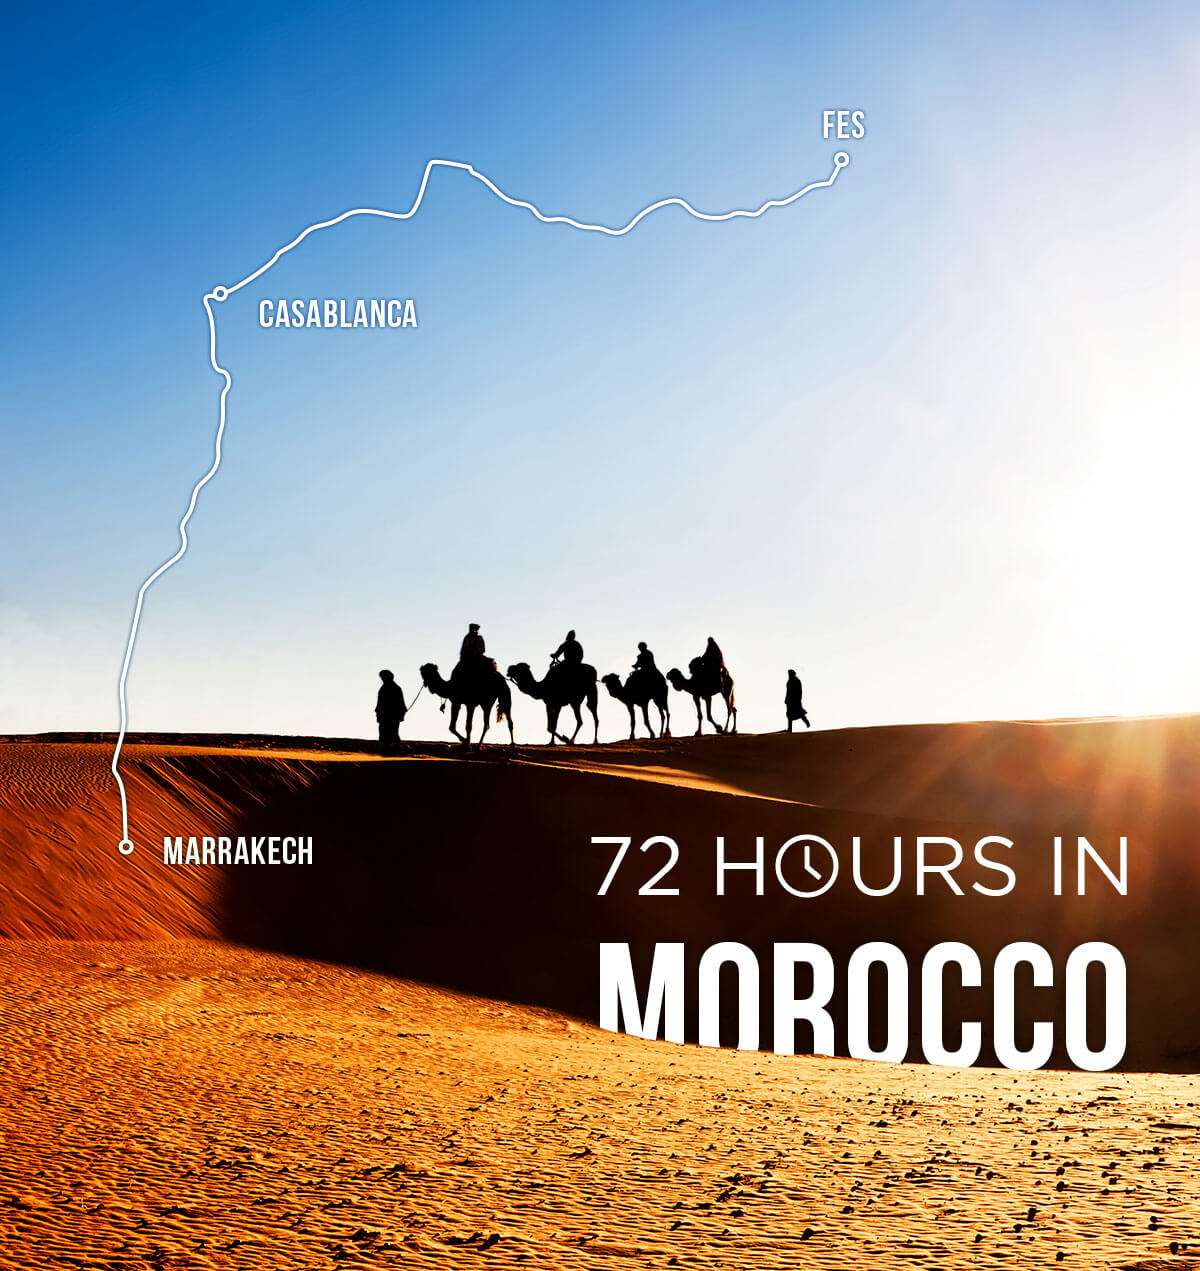 Spend 72 hours in Morocco and earn up to 10,000 miles or points!